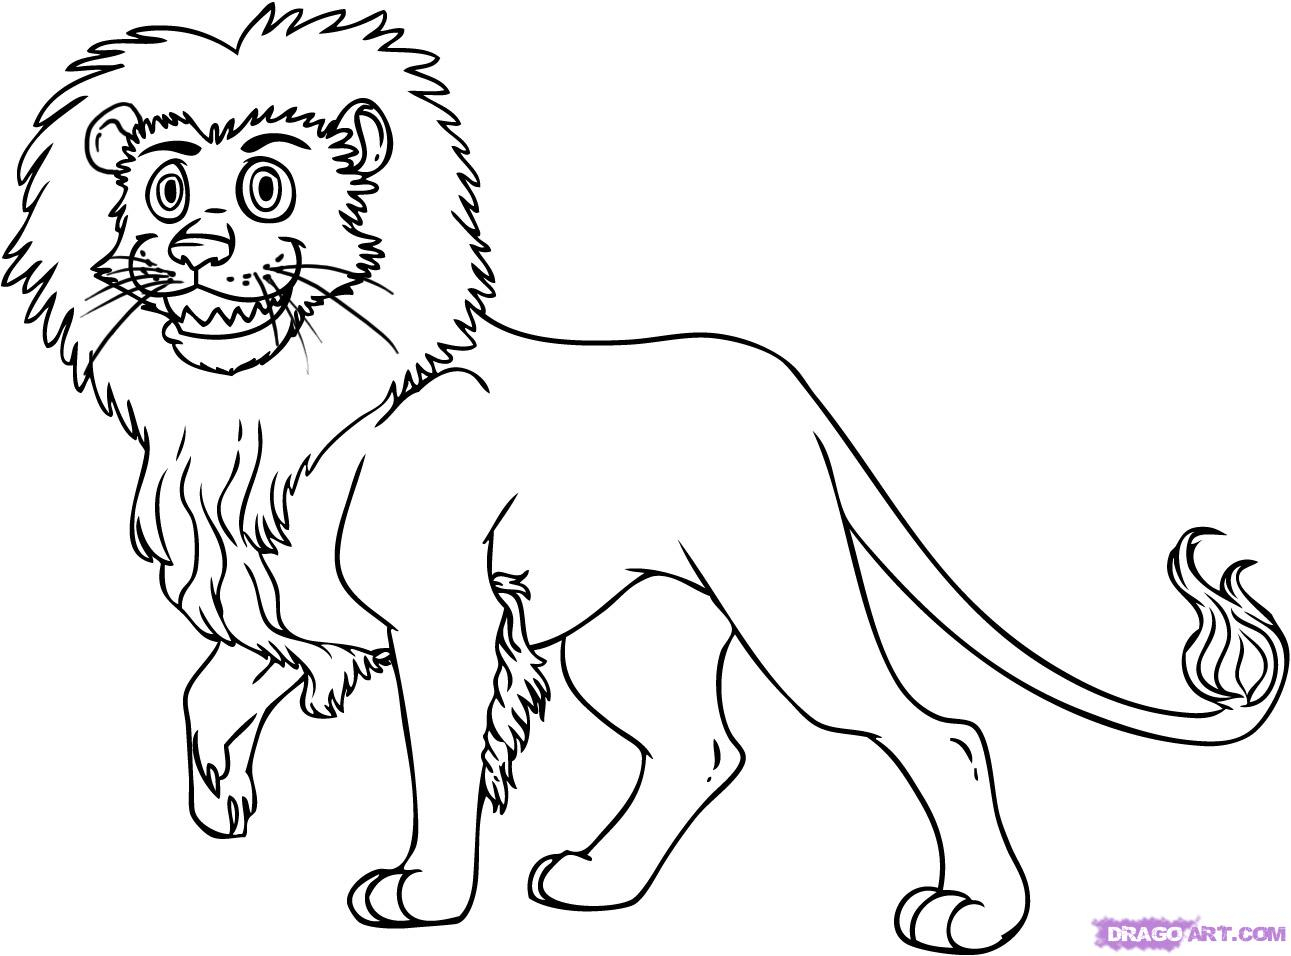 1291x956 Lion Cartoon Drawing How To Draw A Cartoon Lion, Step By Step